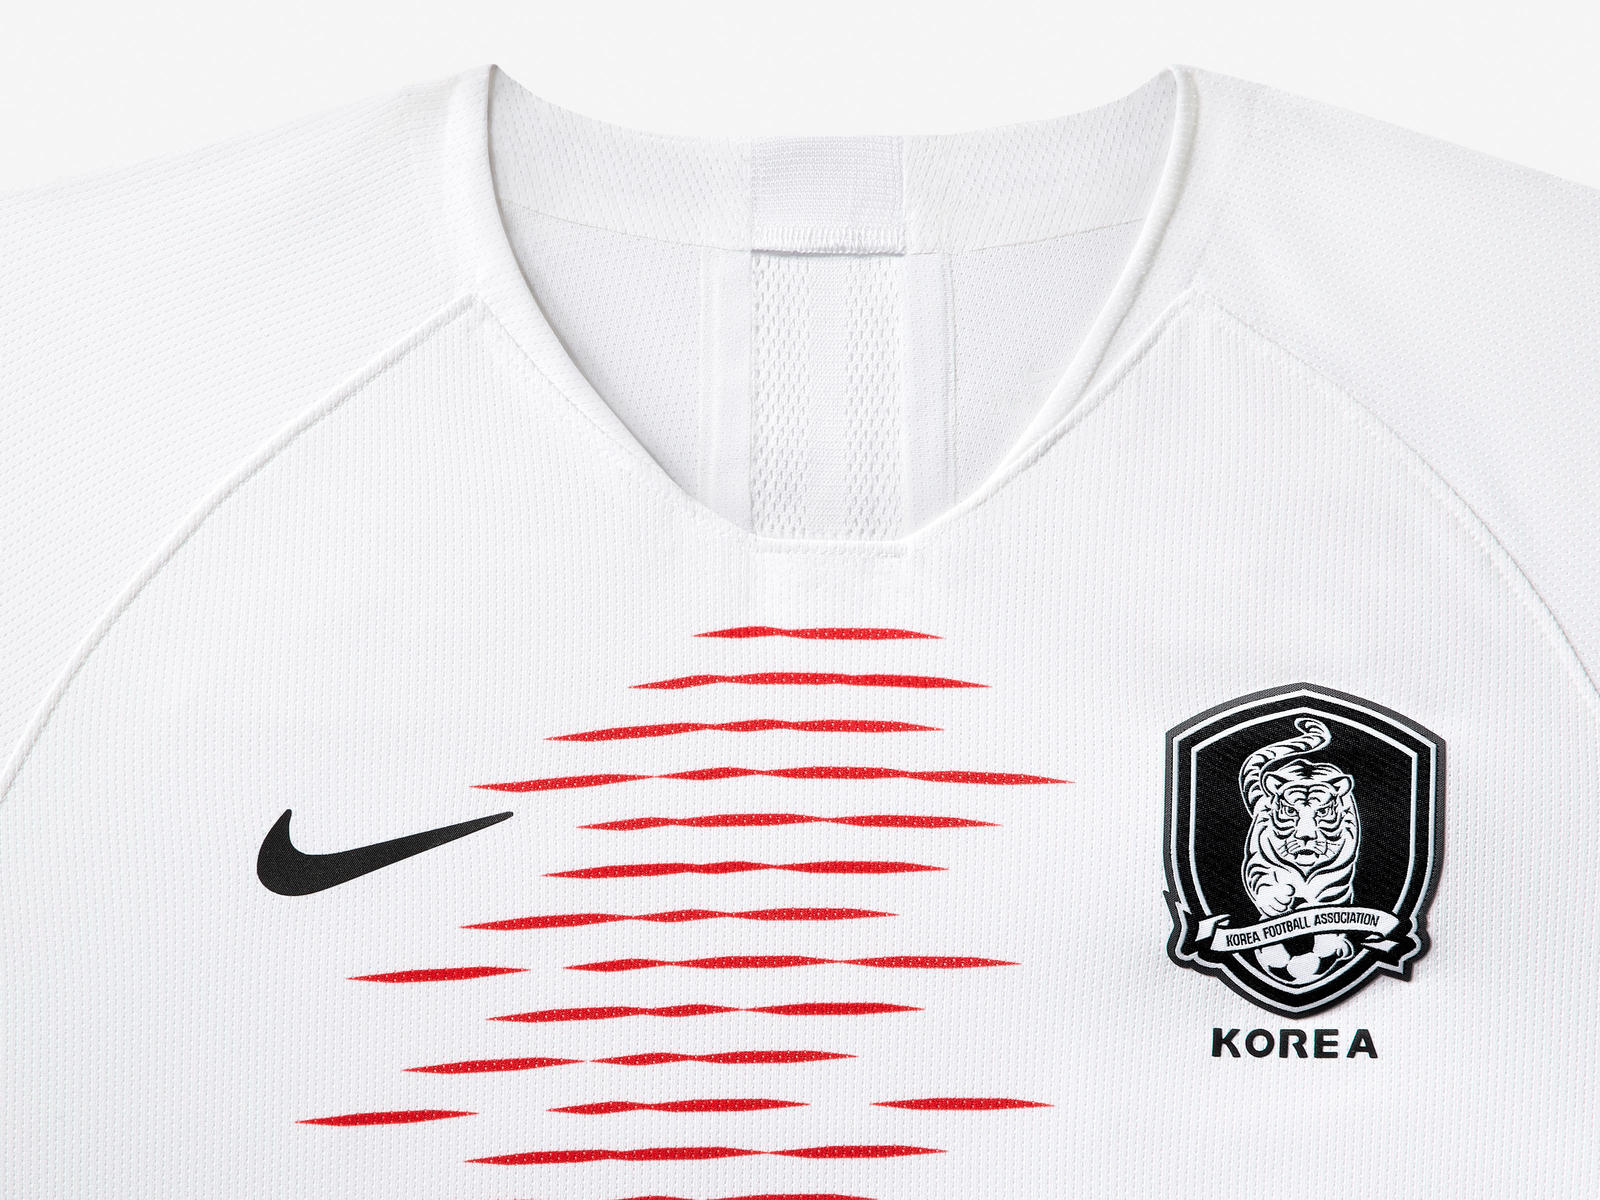 south-korea-national-team-kit-2019-laydown-001_85945.jpg